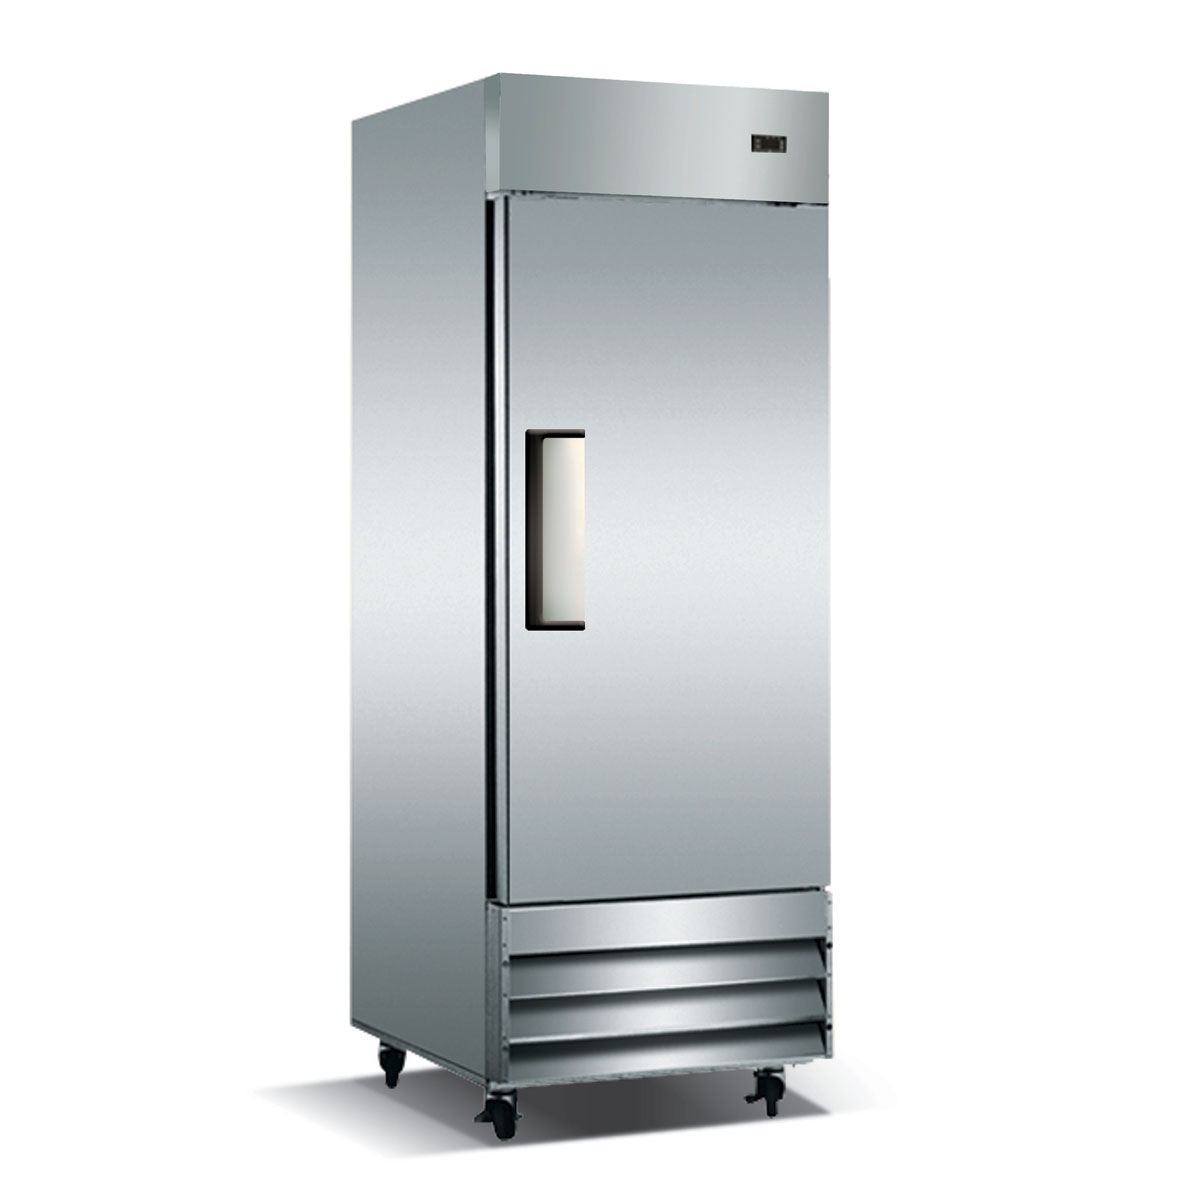 Image of Westwind WR23 1 Door Reach-In Refrigerator